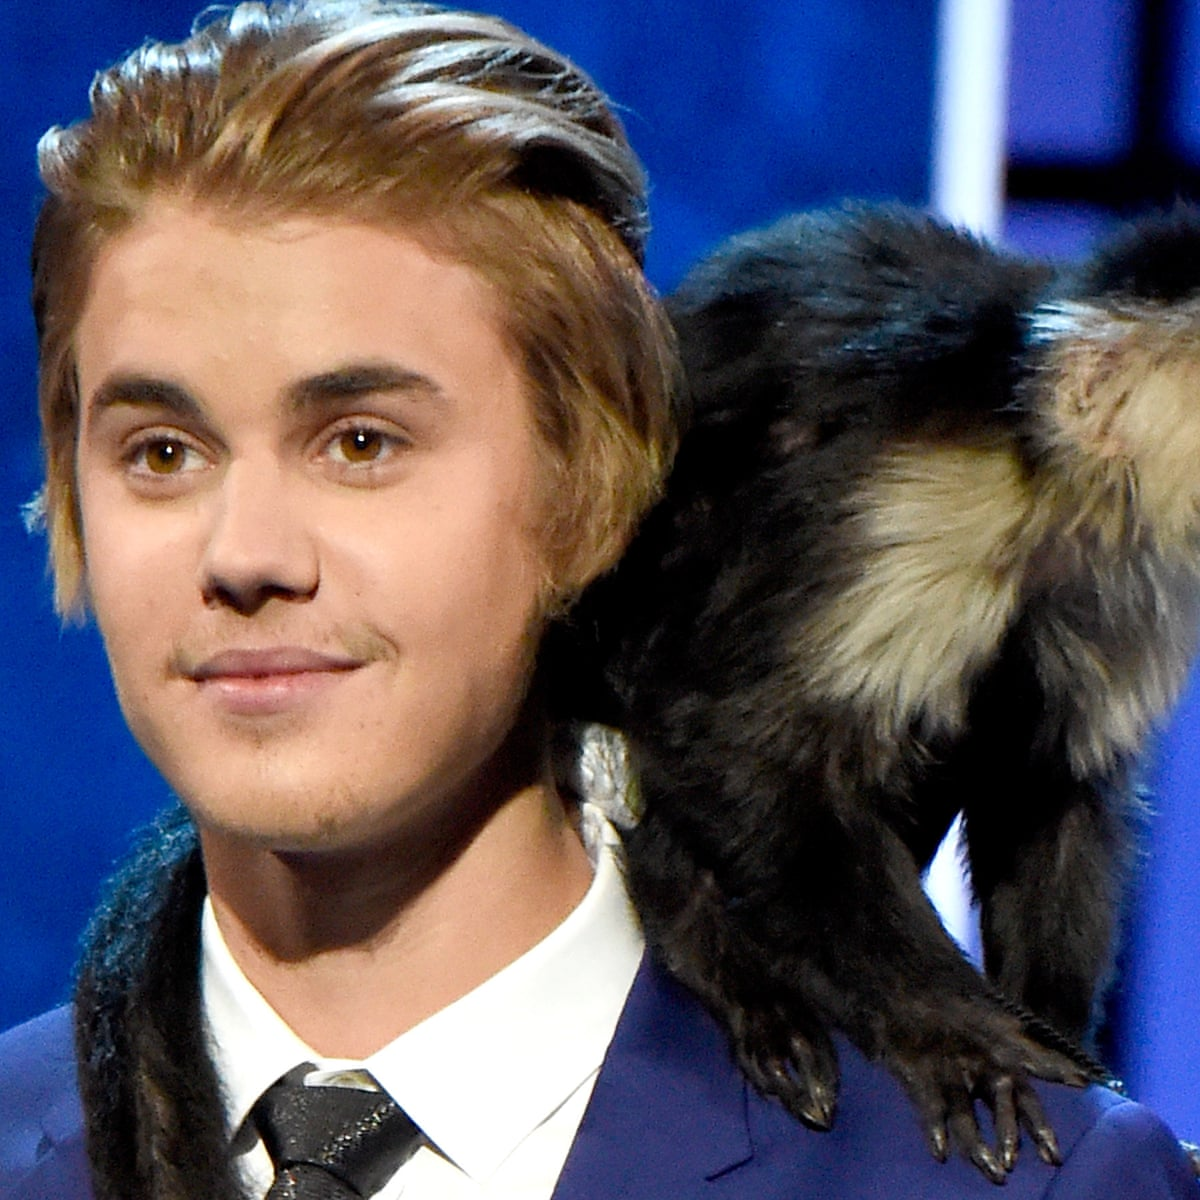 No more monkey business: why primates should never be pets | Life and style  | The Guardian